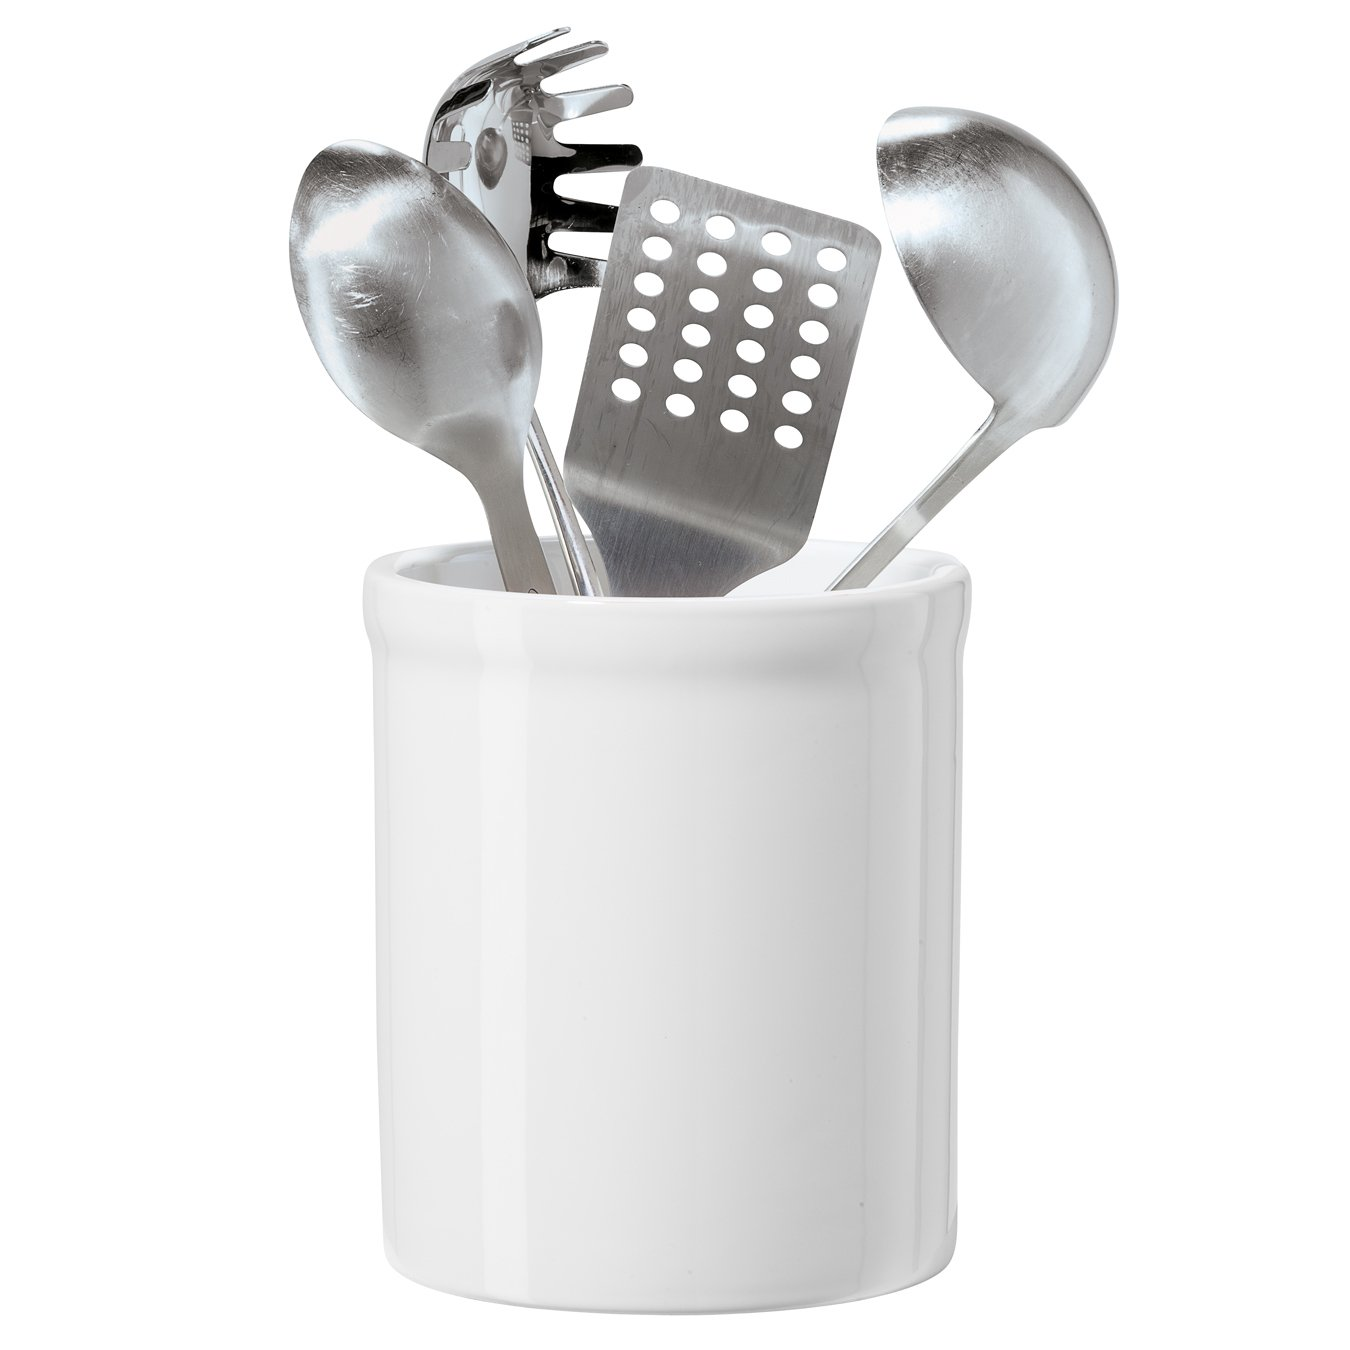 Ceramic Utensil Holder (White) Oggi 5406